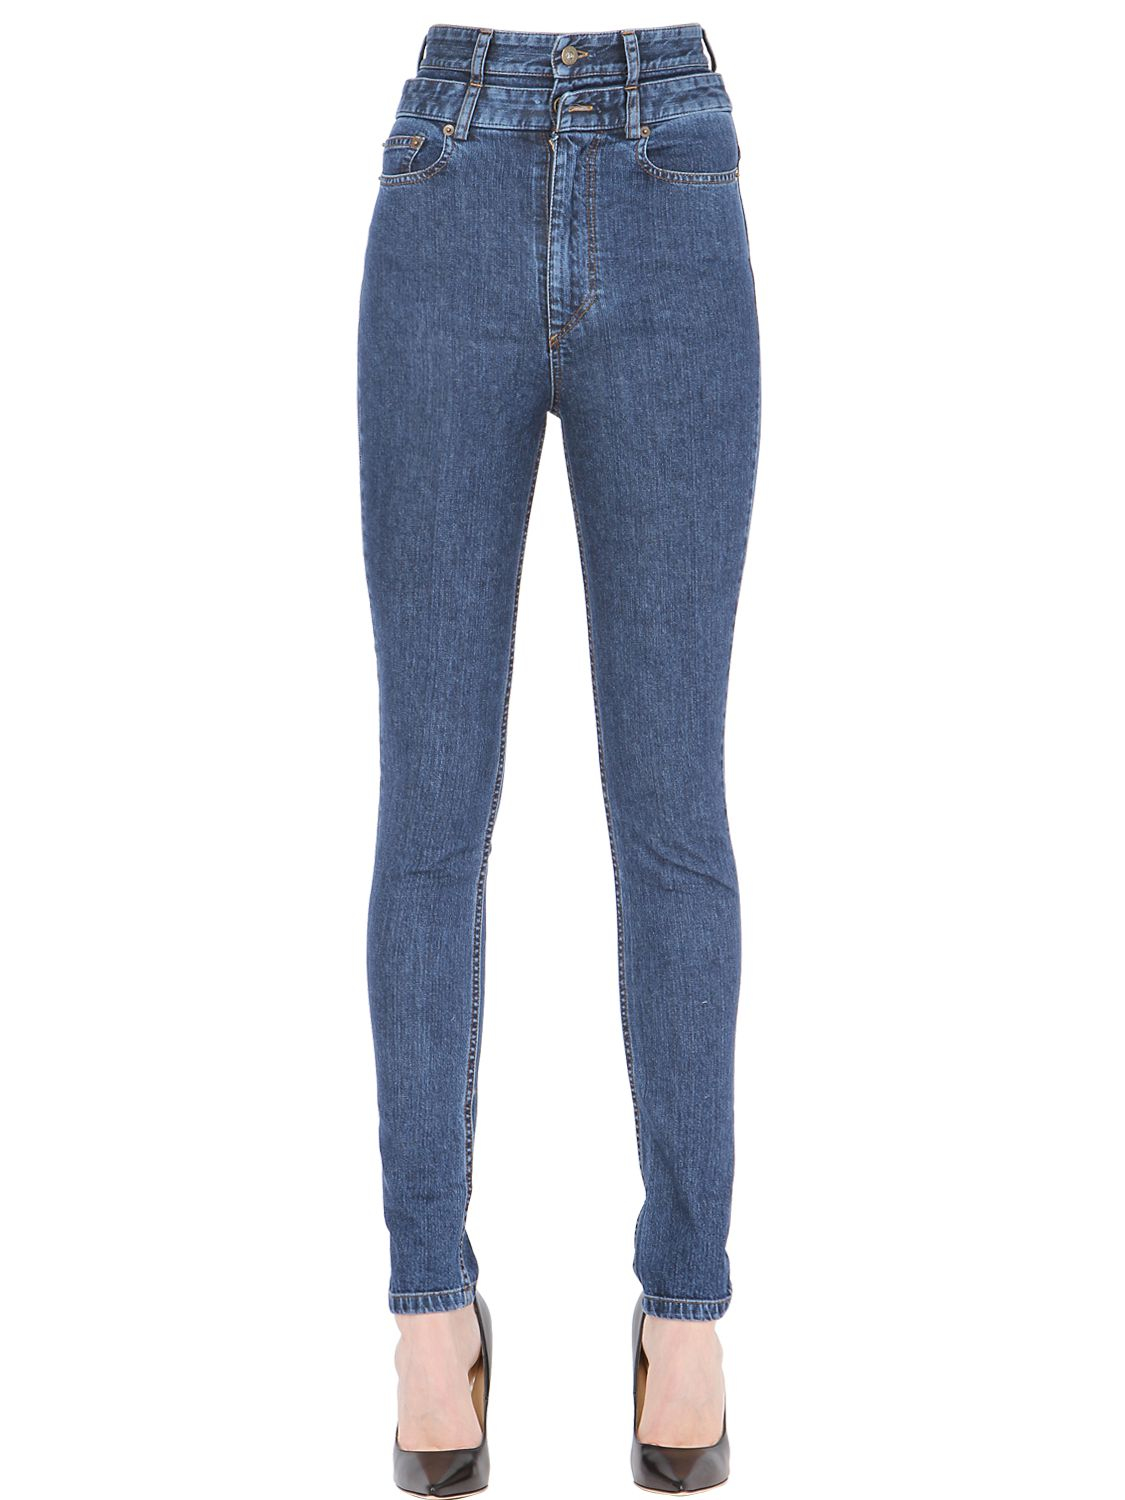 Y. project Skinny High Waisted Cotton Denim Jeans in Blue | Lyst